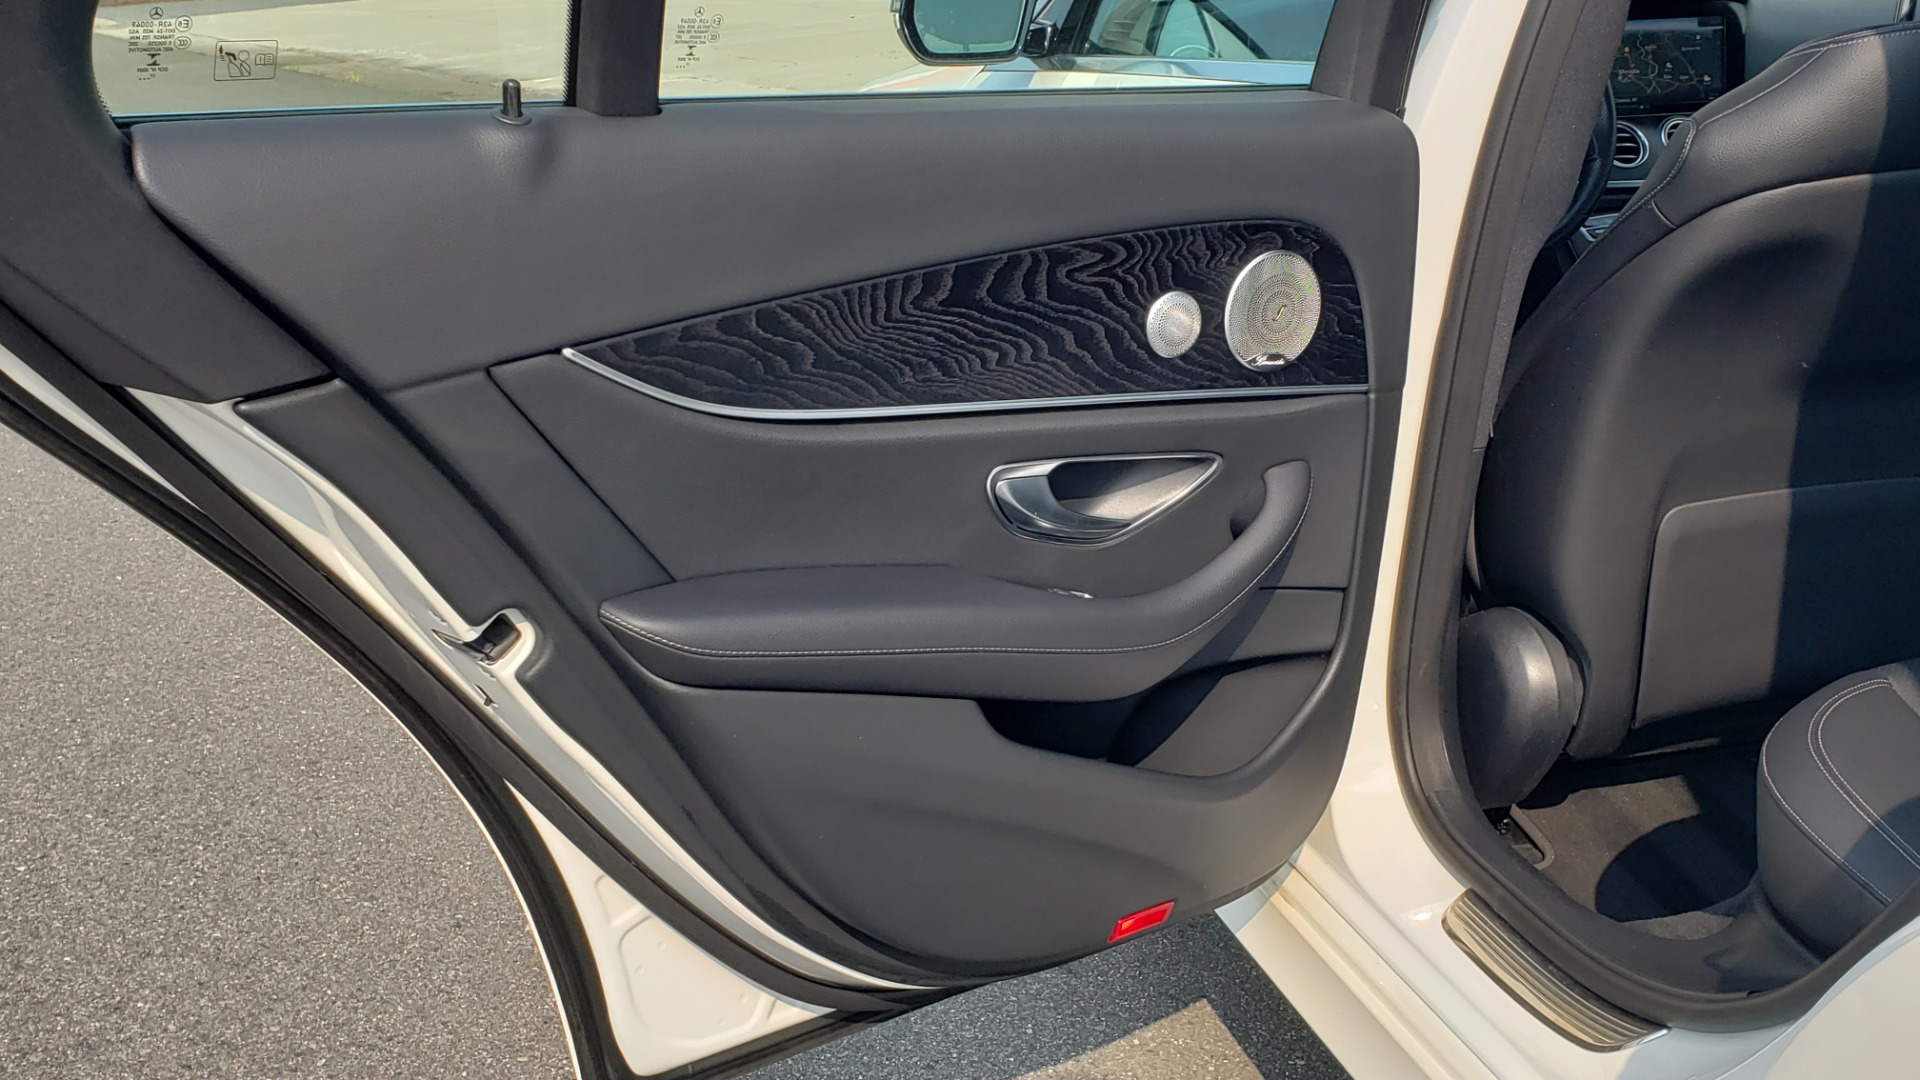 Used 2018 Mercedes-Benz E-CLASS E 300 4MATIC / PREMIUM / NAV / PANO-ROOF / BURMESTER / REARVIEW for sale $41,995 at Formula Imports in Charlotte NC 28227 54